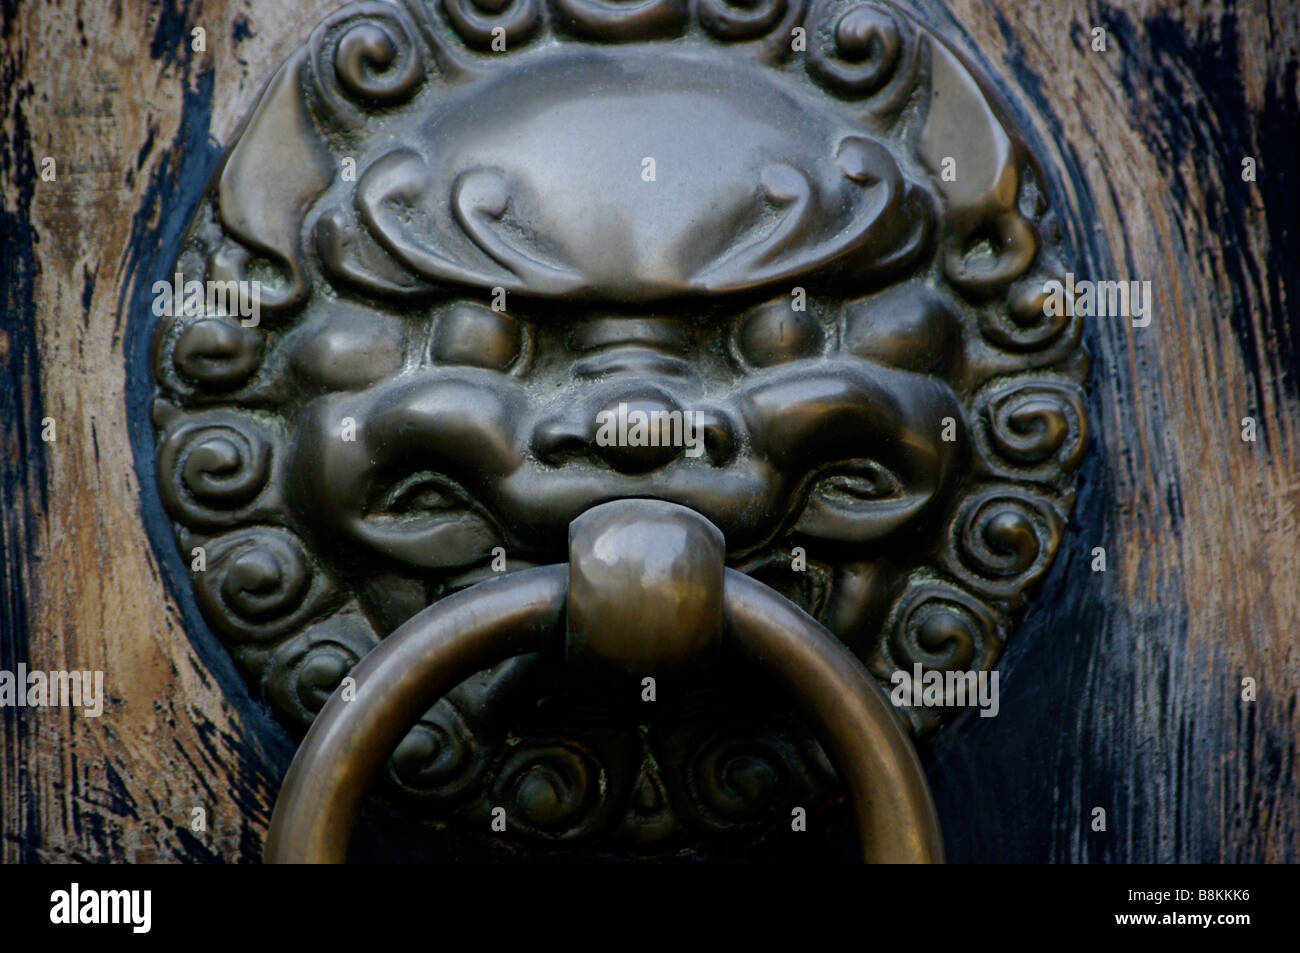 Keeping Guard At A Buddhist Temple The Large Bronze Foo Dog Door